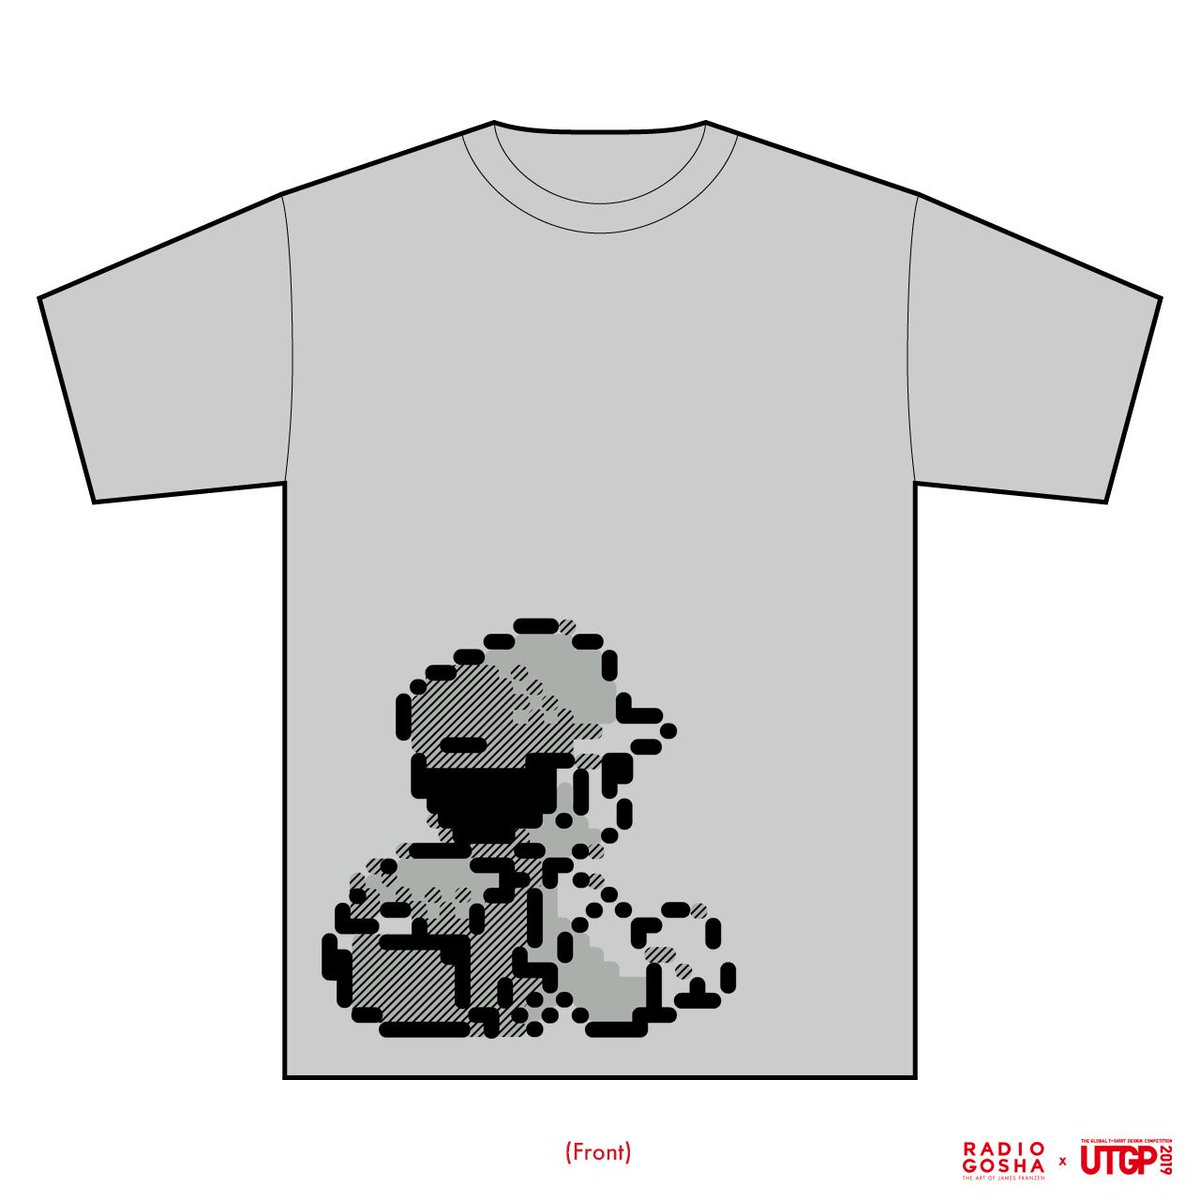 edef7843a Sadly wasn't chosen, but I'm stoked about the winning designs! #uniqlo #utgp  #utgp2019 #pokemon #nosepass #garbodor #nintendopic.twitter.com/xQsiZ6IIQV